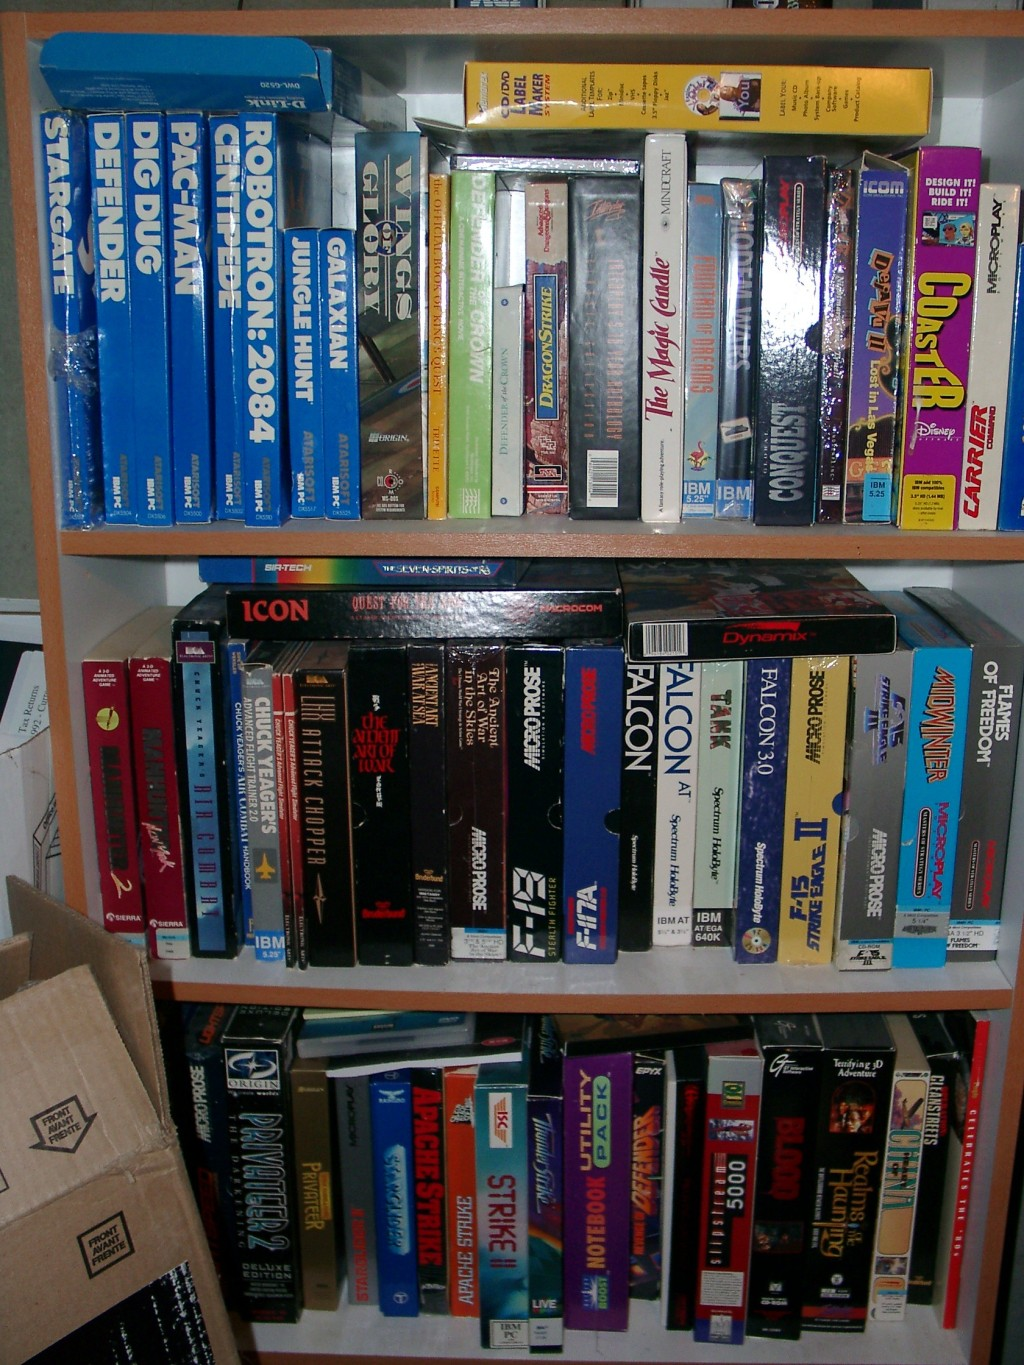 bookshelf filled with computer games